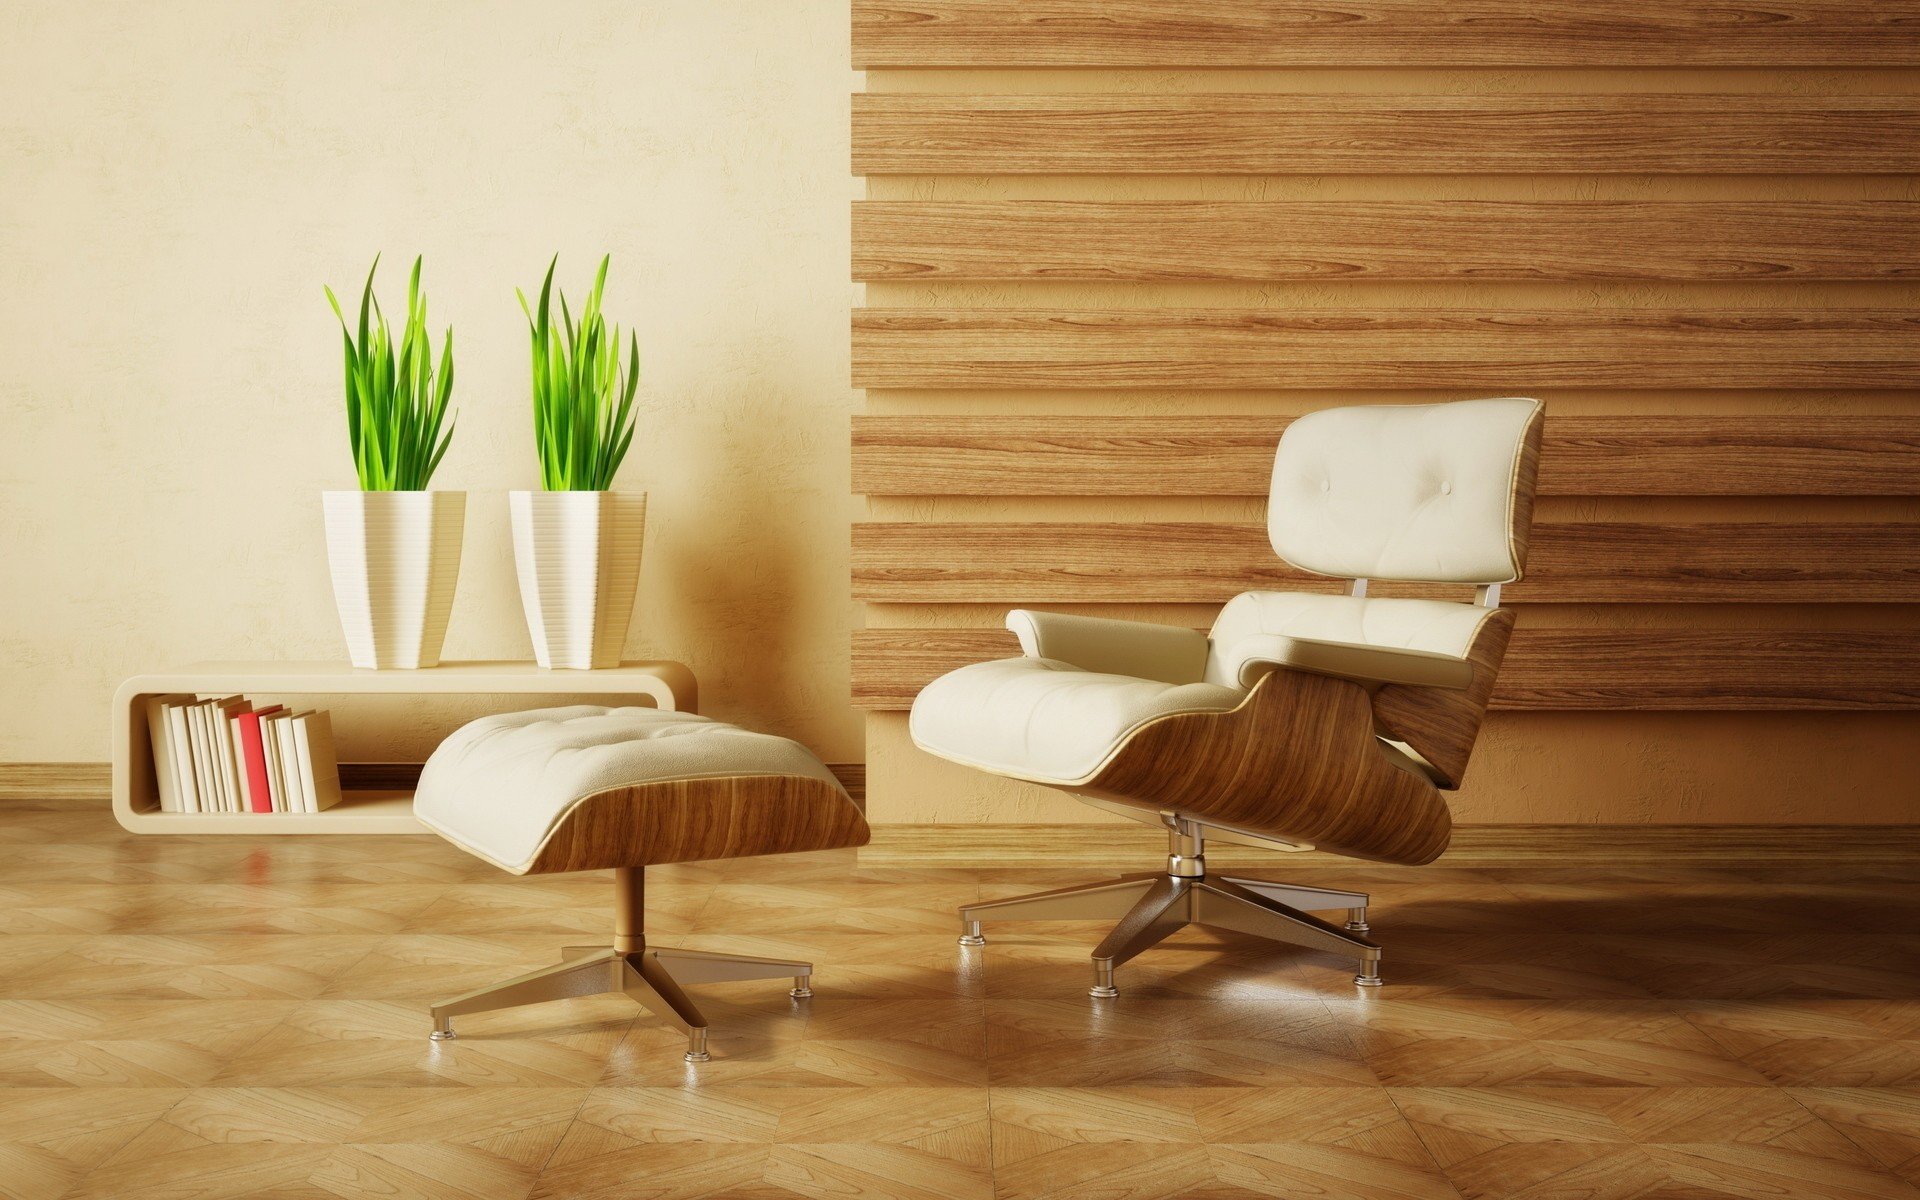 40 3 for Interior design images free download